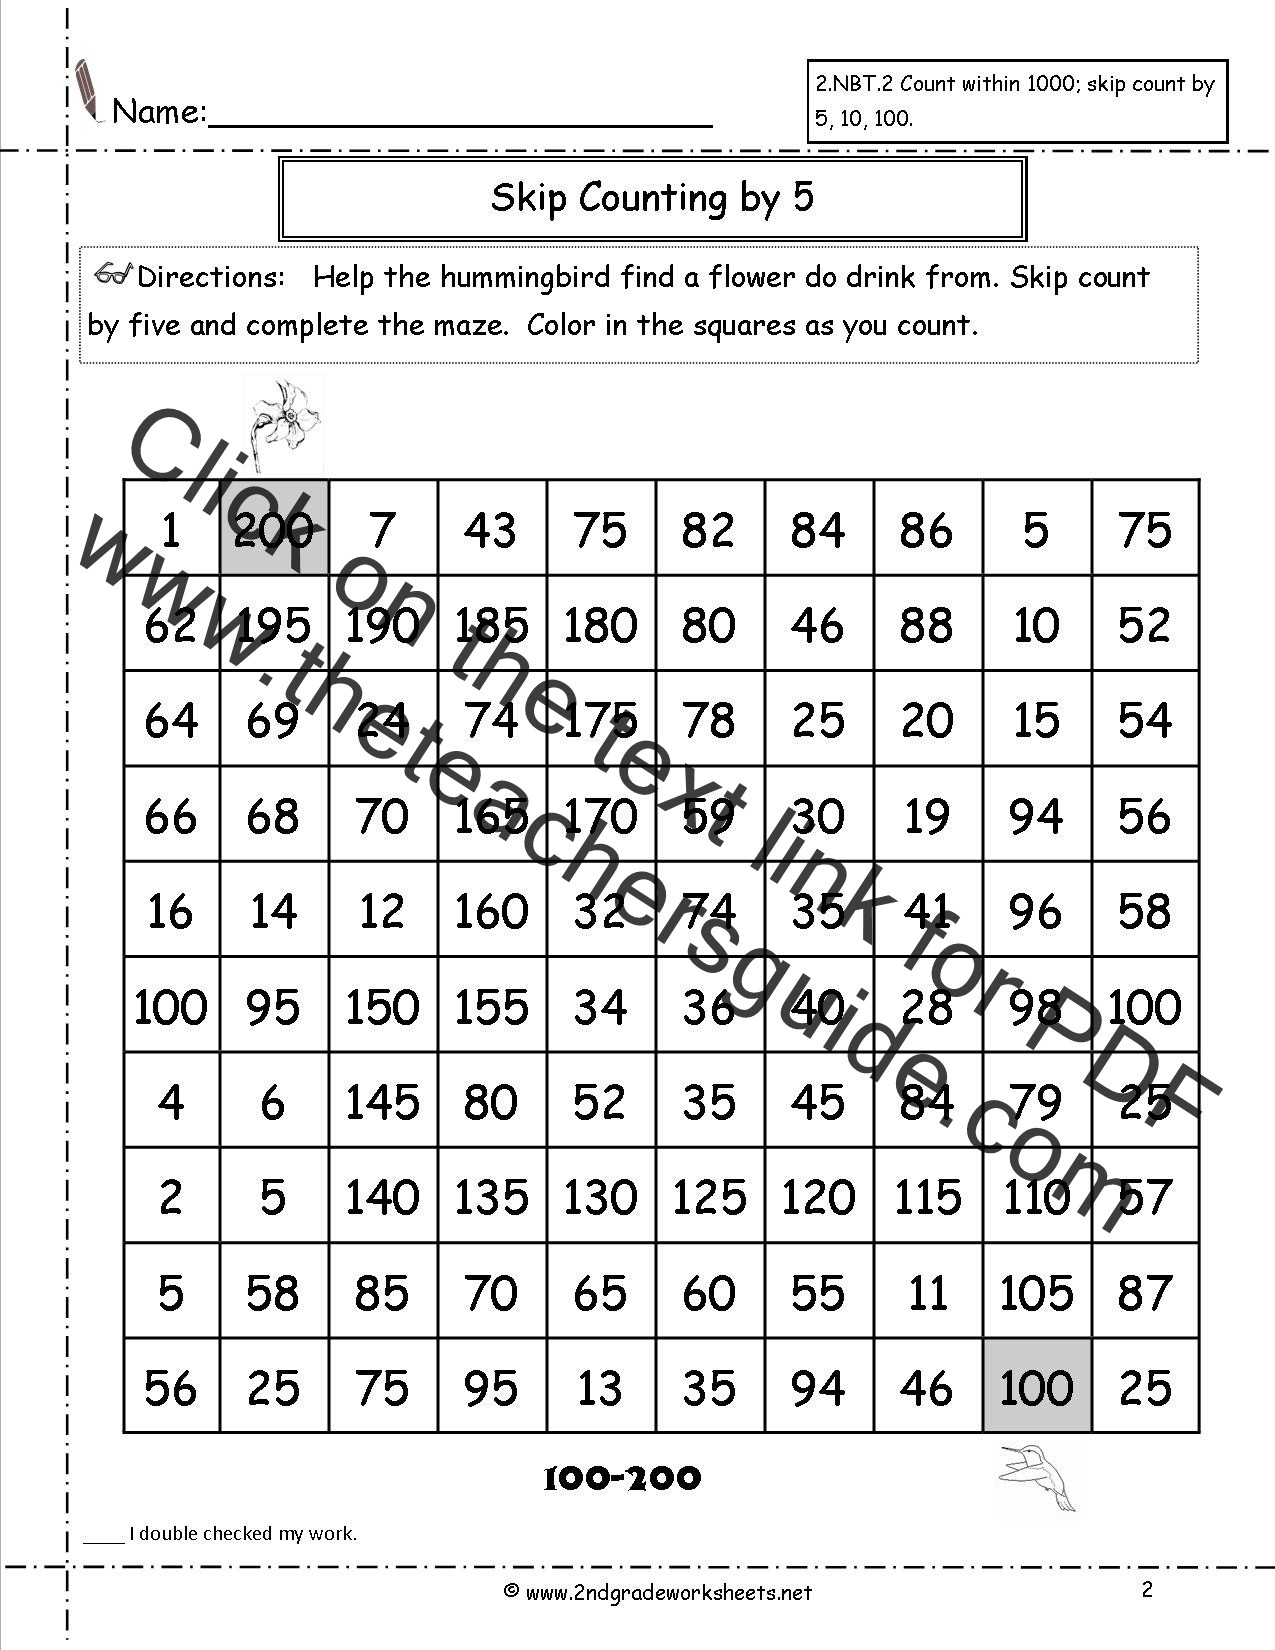 Skip Counting Worksheets 3rd Grade Free Skip Counting Worksheets Math